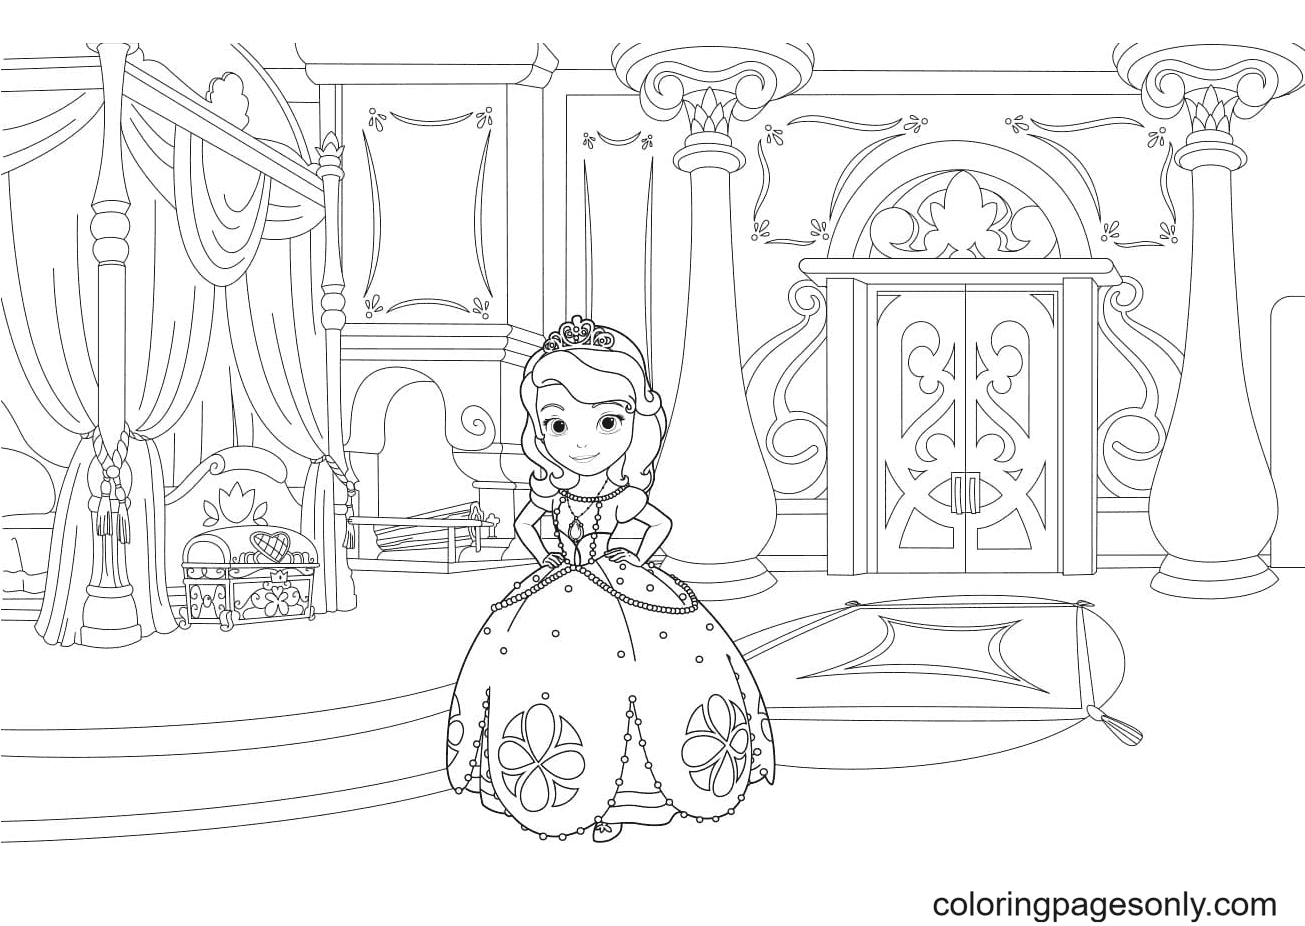 Sofia in Her Room Coloring Page